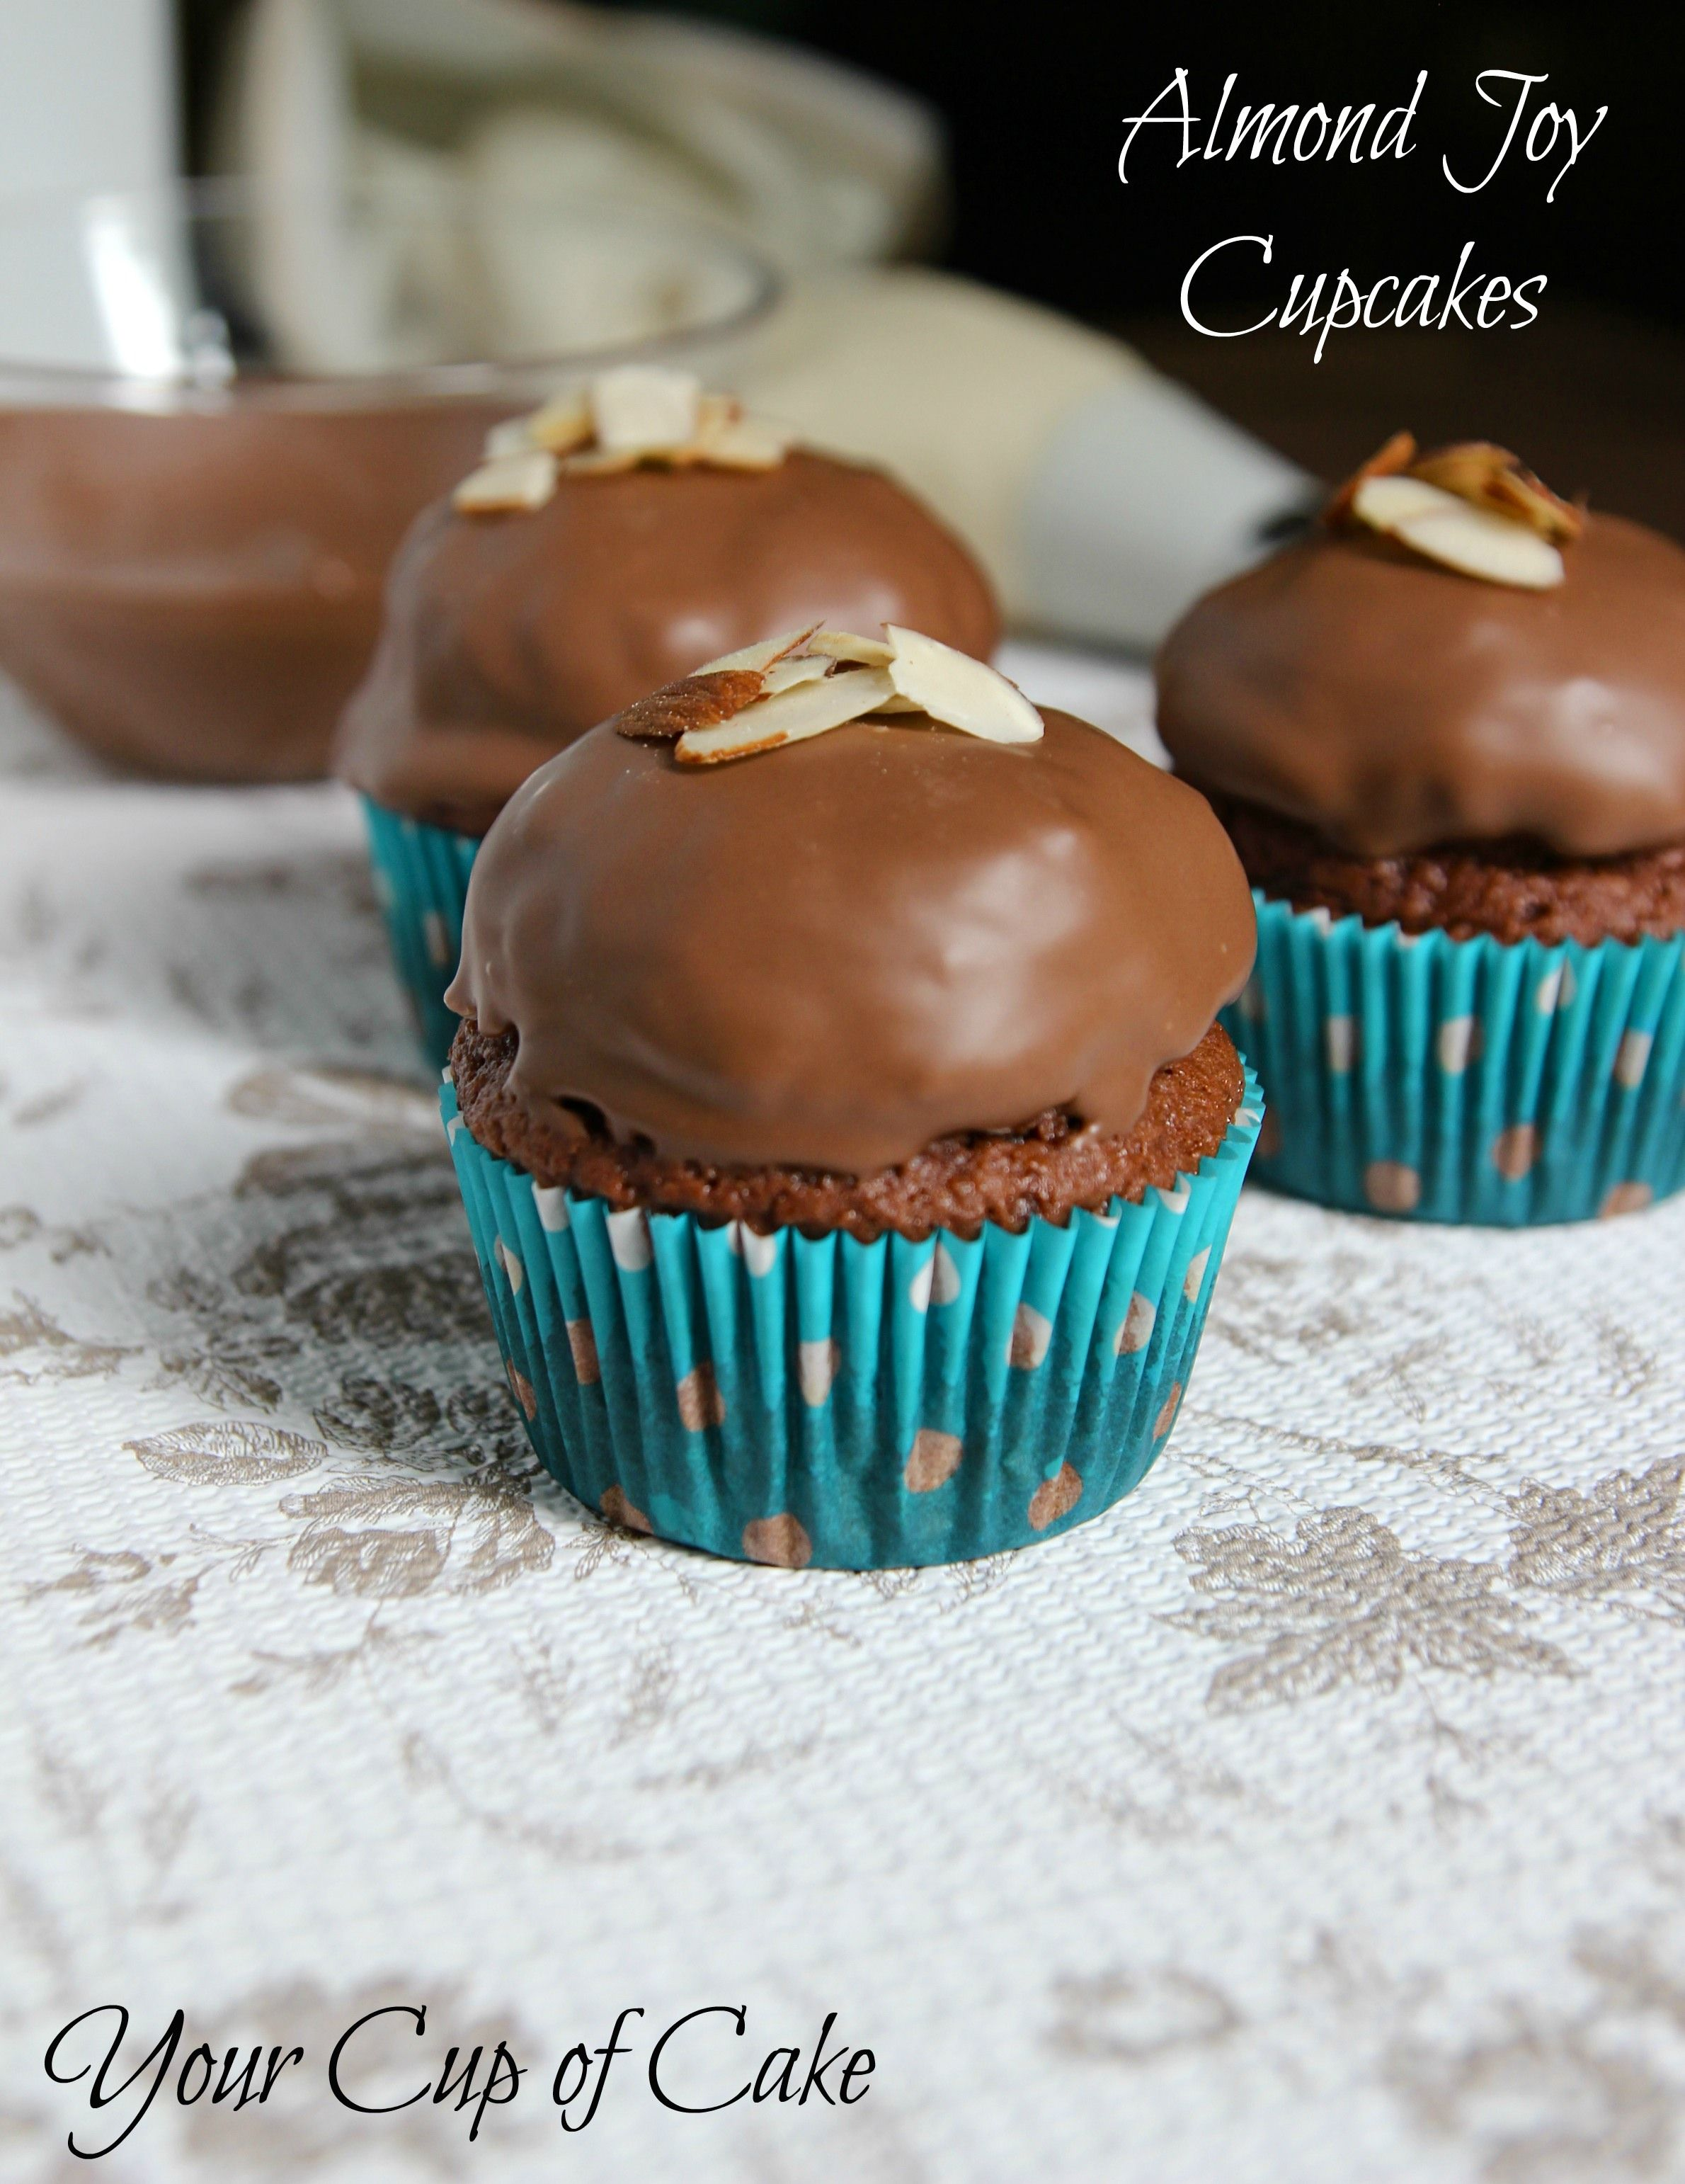 Almond Joy Cupcakes....there's coconut under that chocolate! Yum!